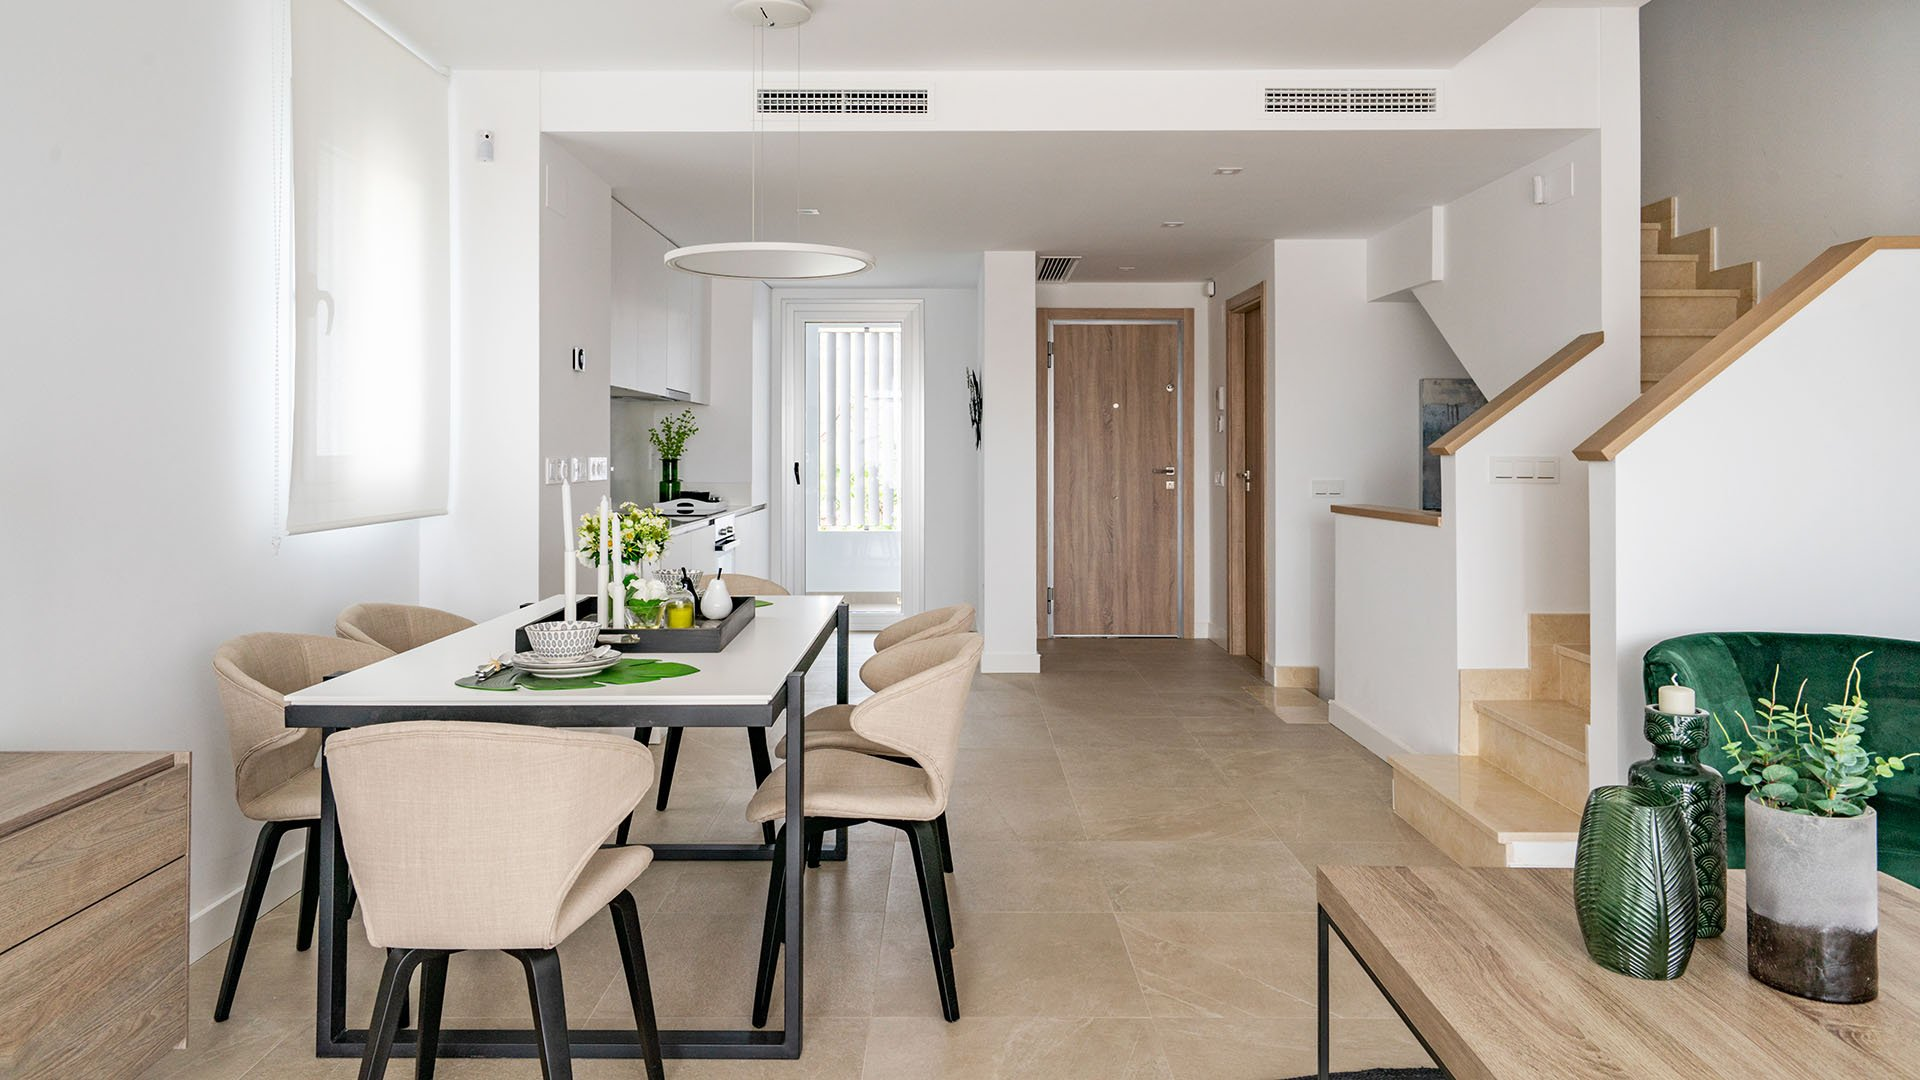 Green Golf: Semi-detached frontline golf houses with large terraces